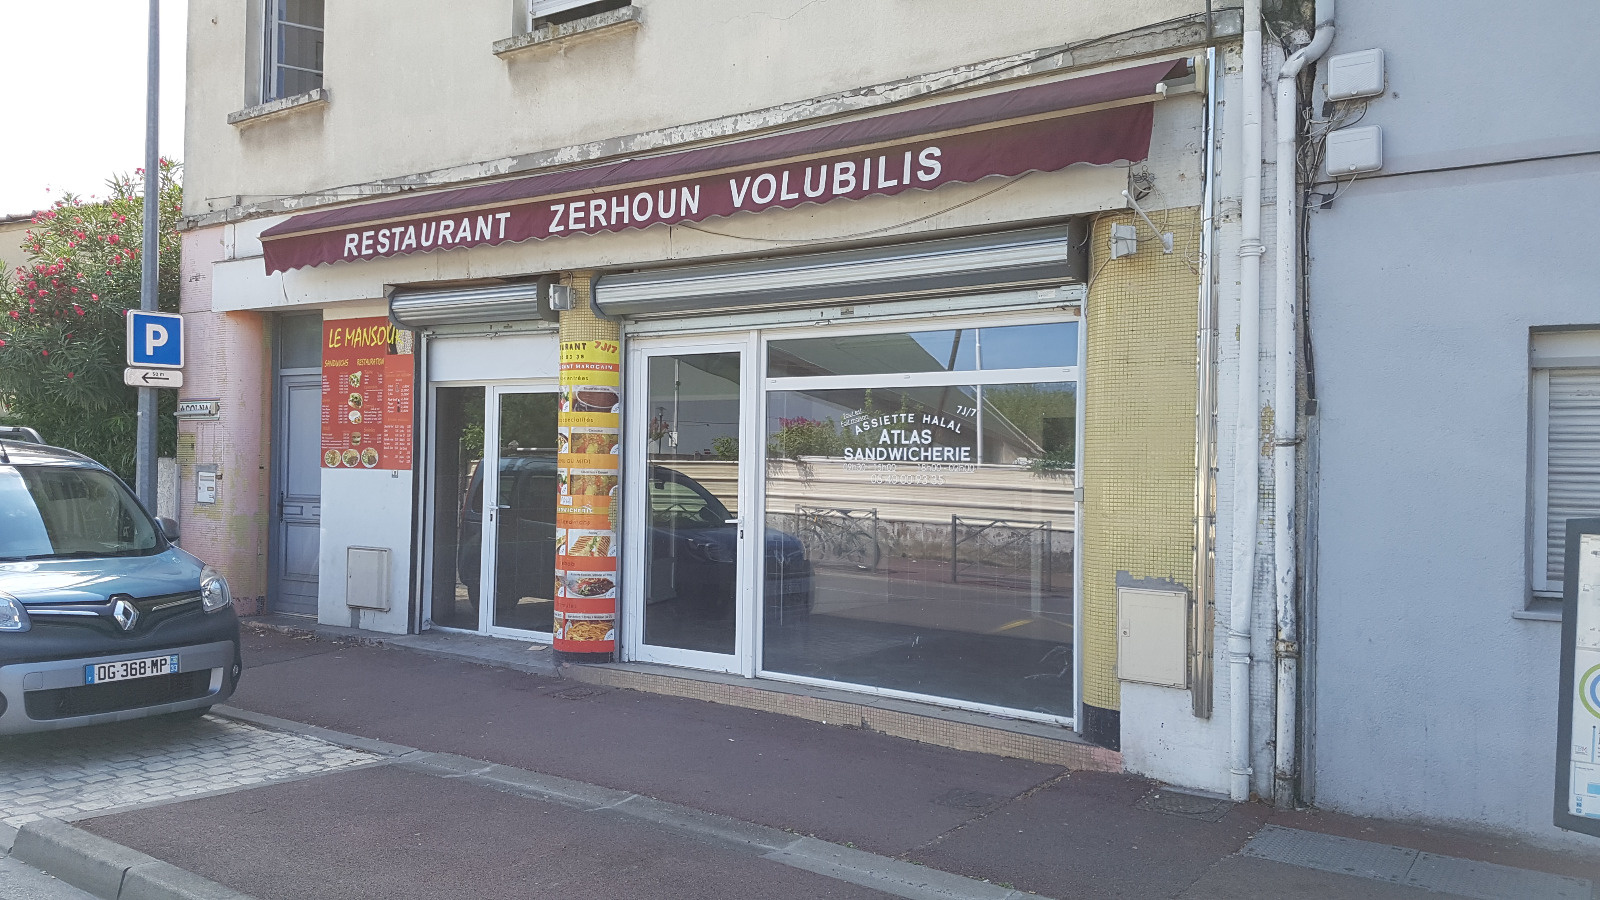 Vente Immobilier Professionnel Local commercial Bordeaux (33800)